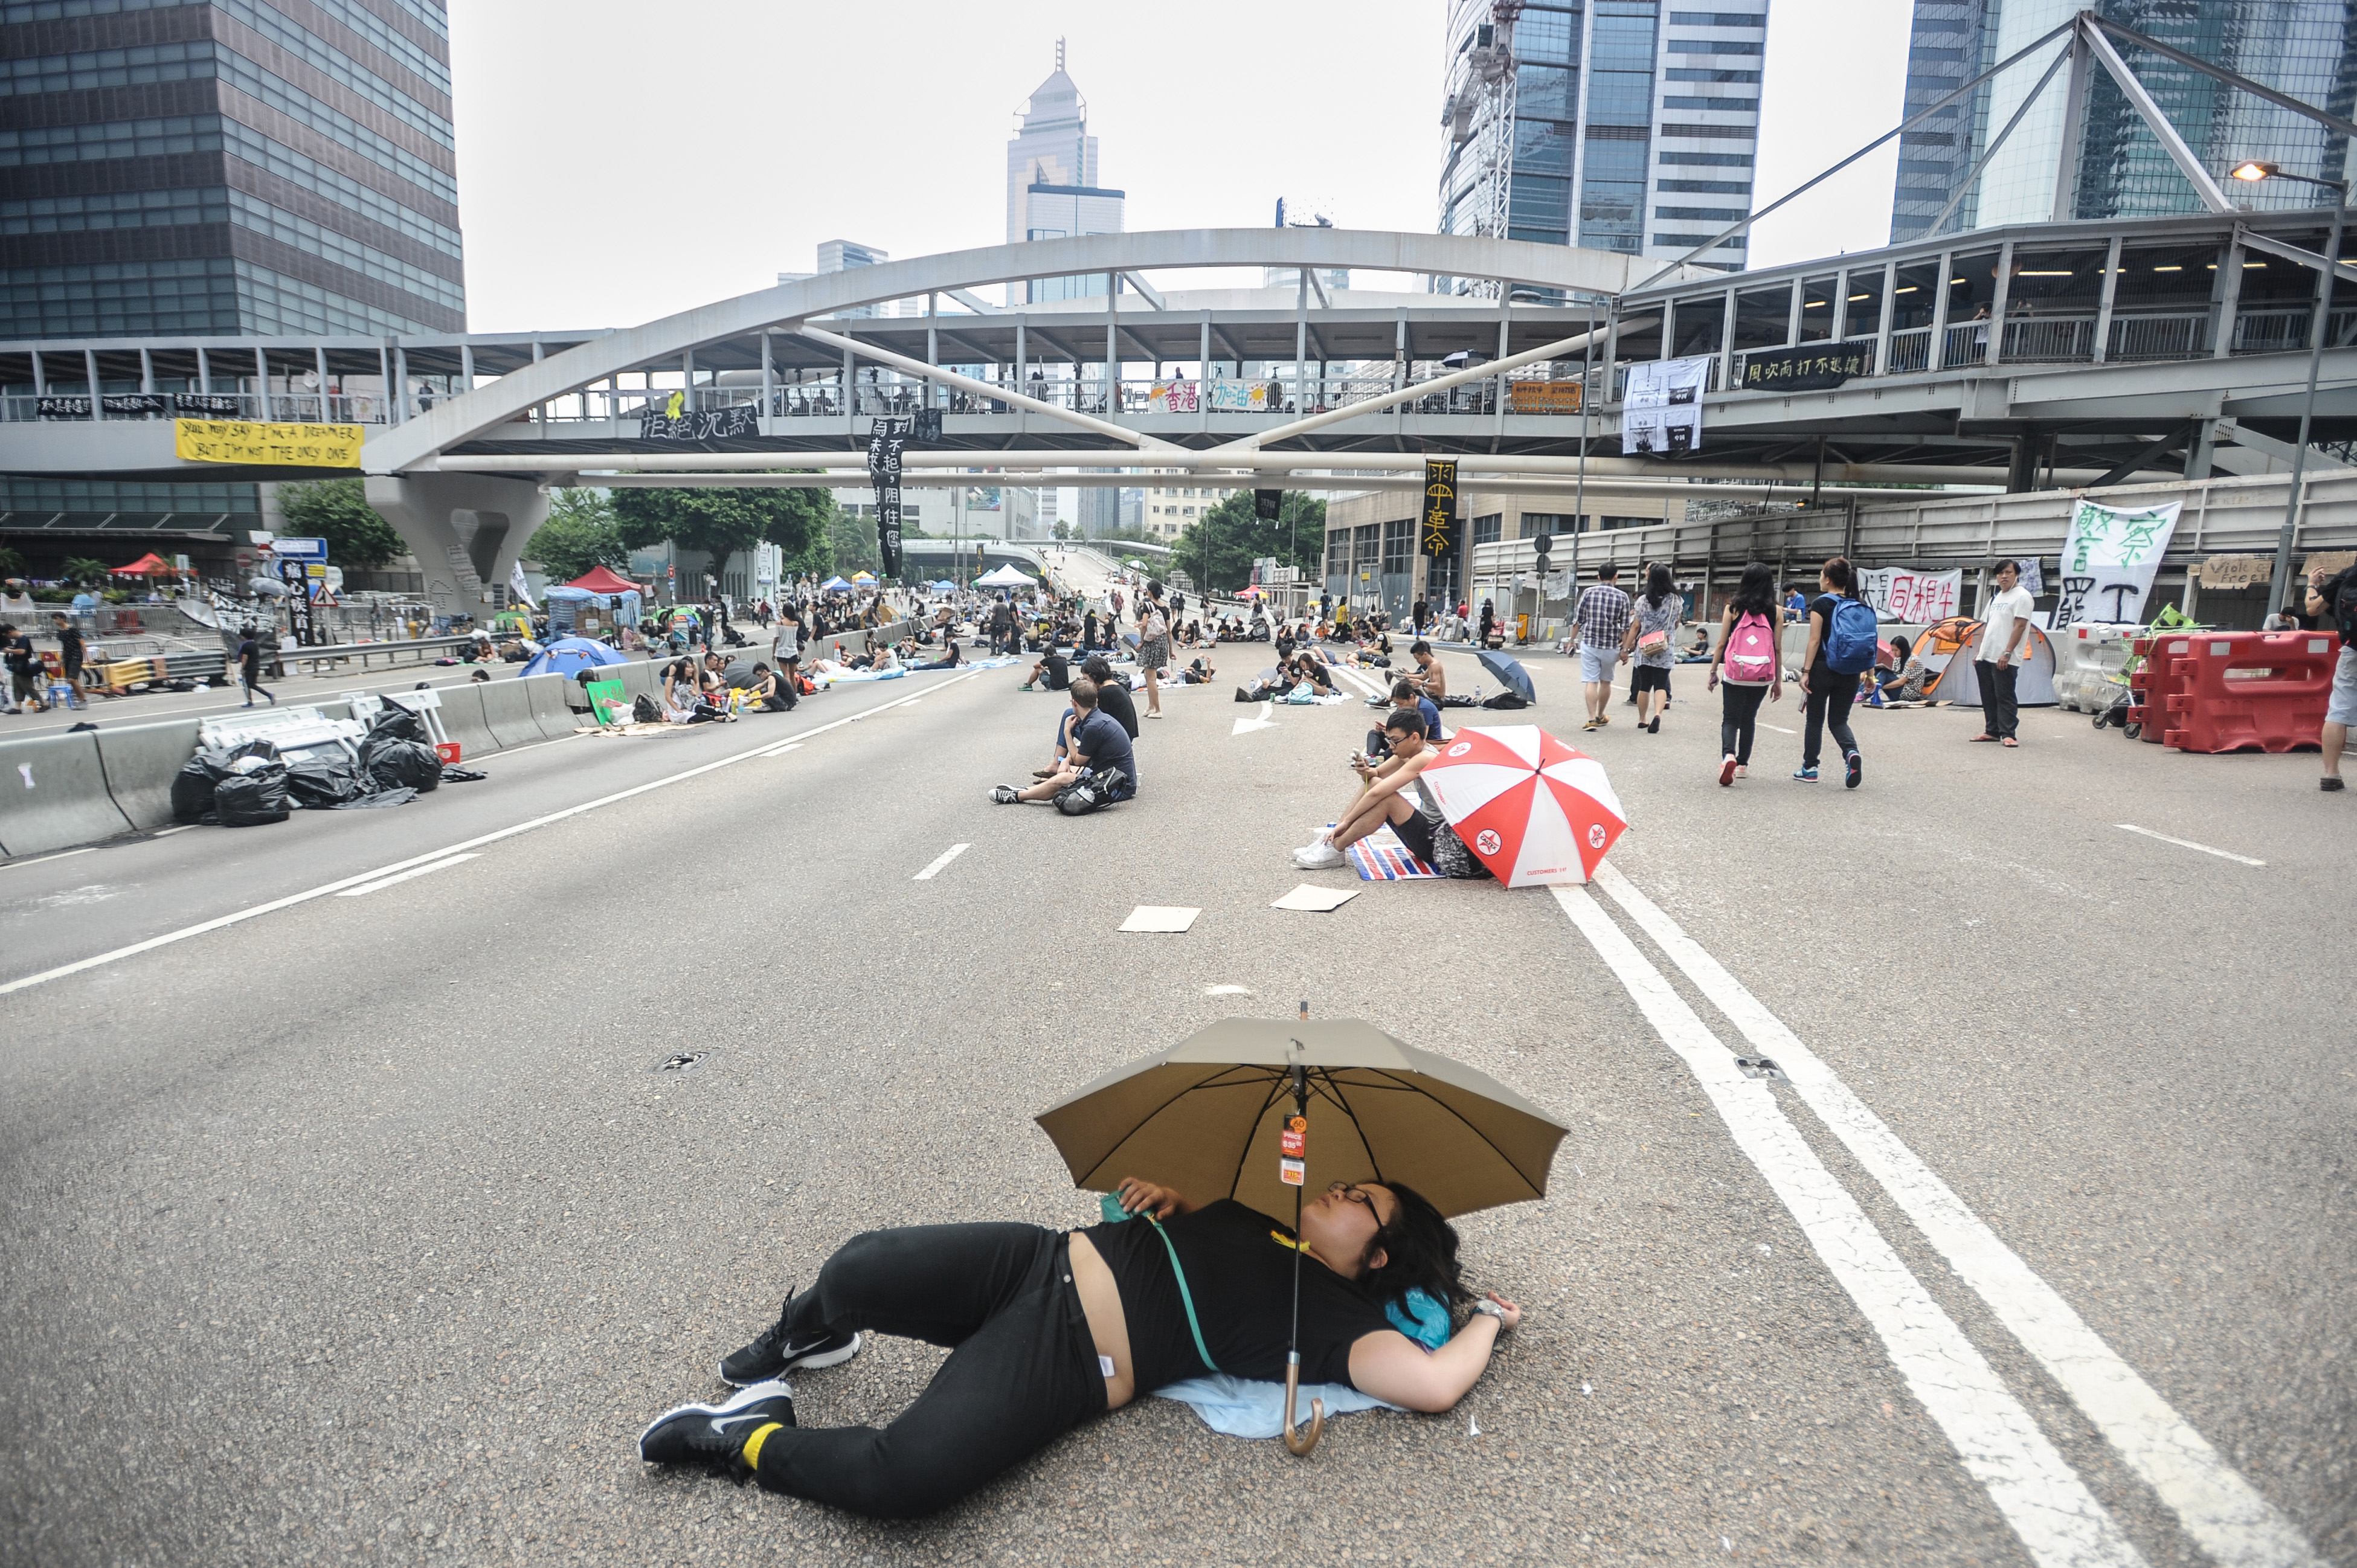 Pro-democracy demonstrations continue in Hong Kong